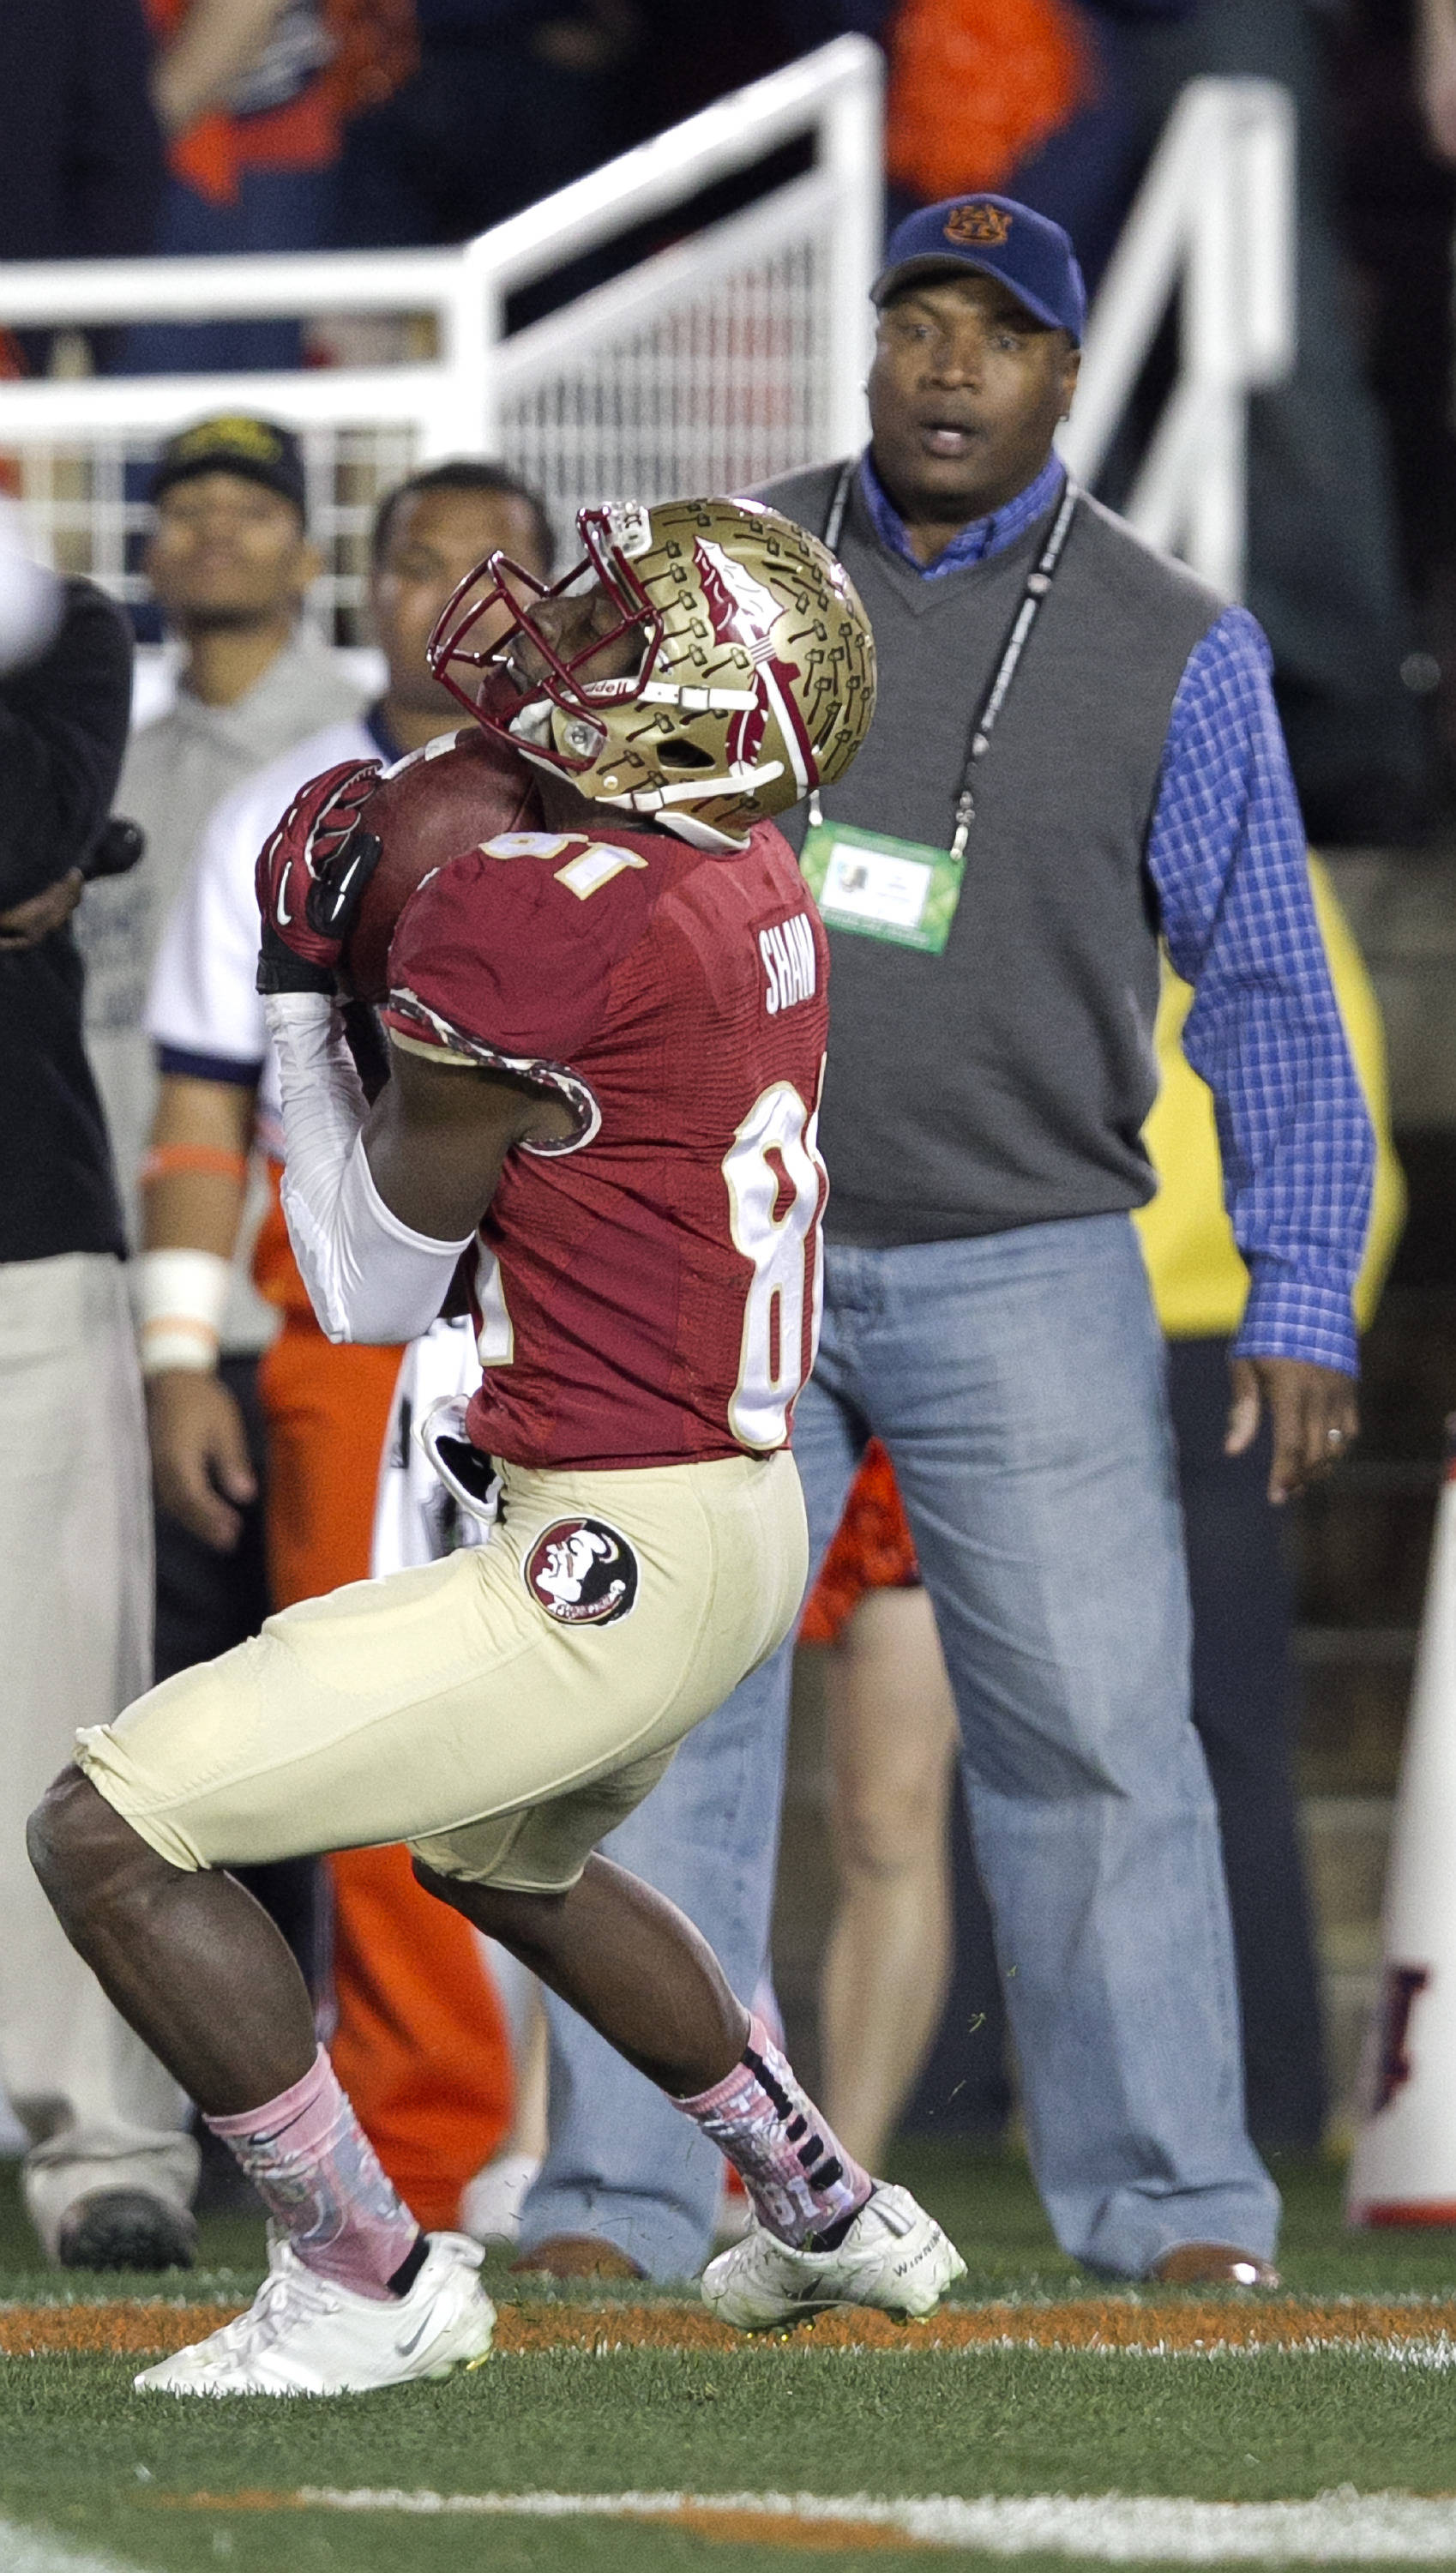 Kenny Shaw (81) with a fair catch, BCS Championship, FSU vs Auburn, Rose Bowl, Pasadena, CA,  1-06-14,  (Photo by Steve Musco)